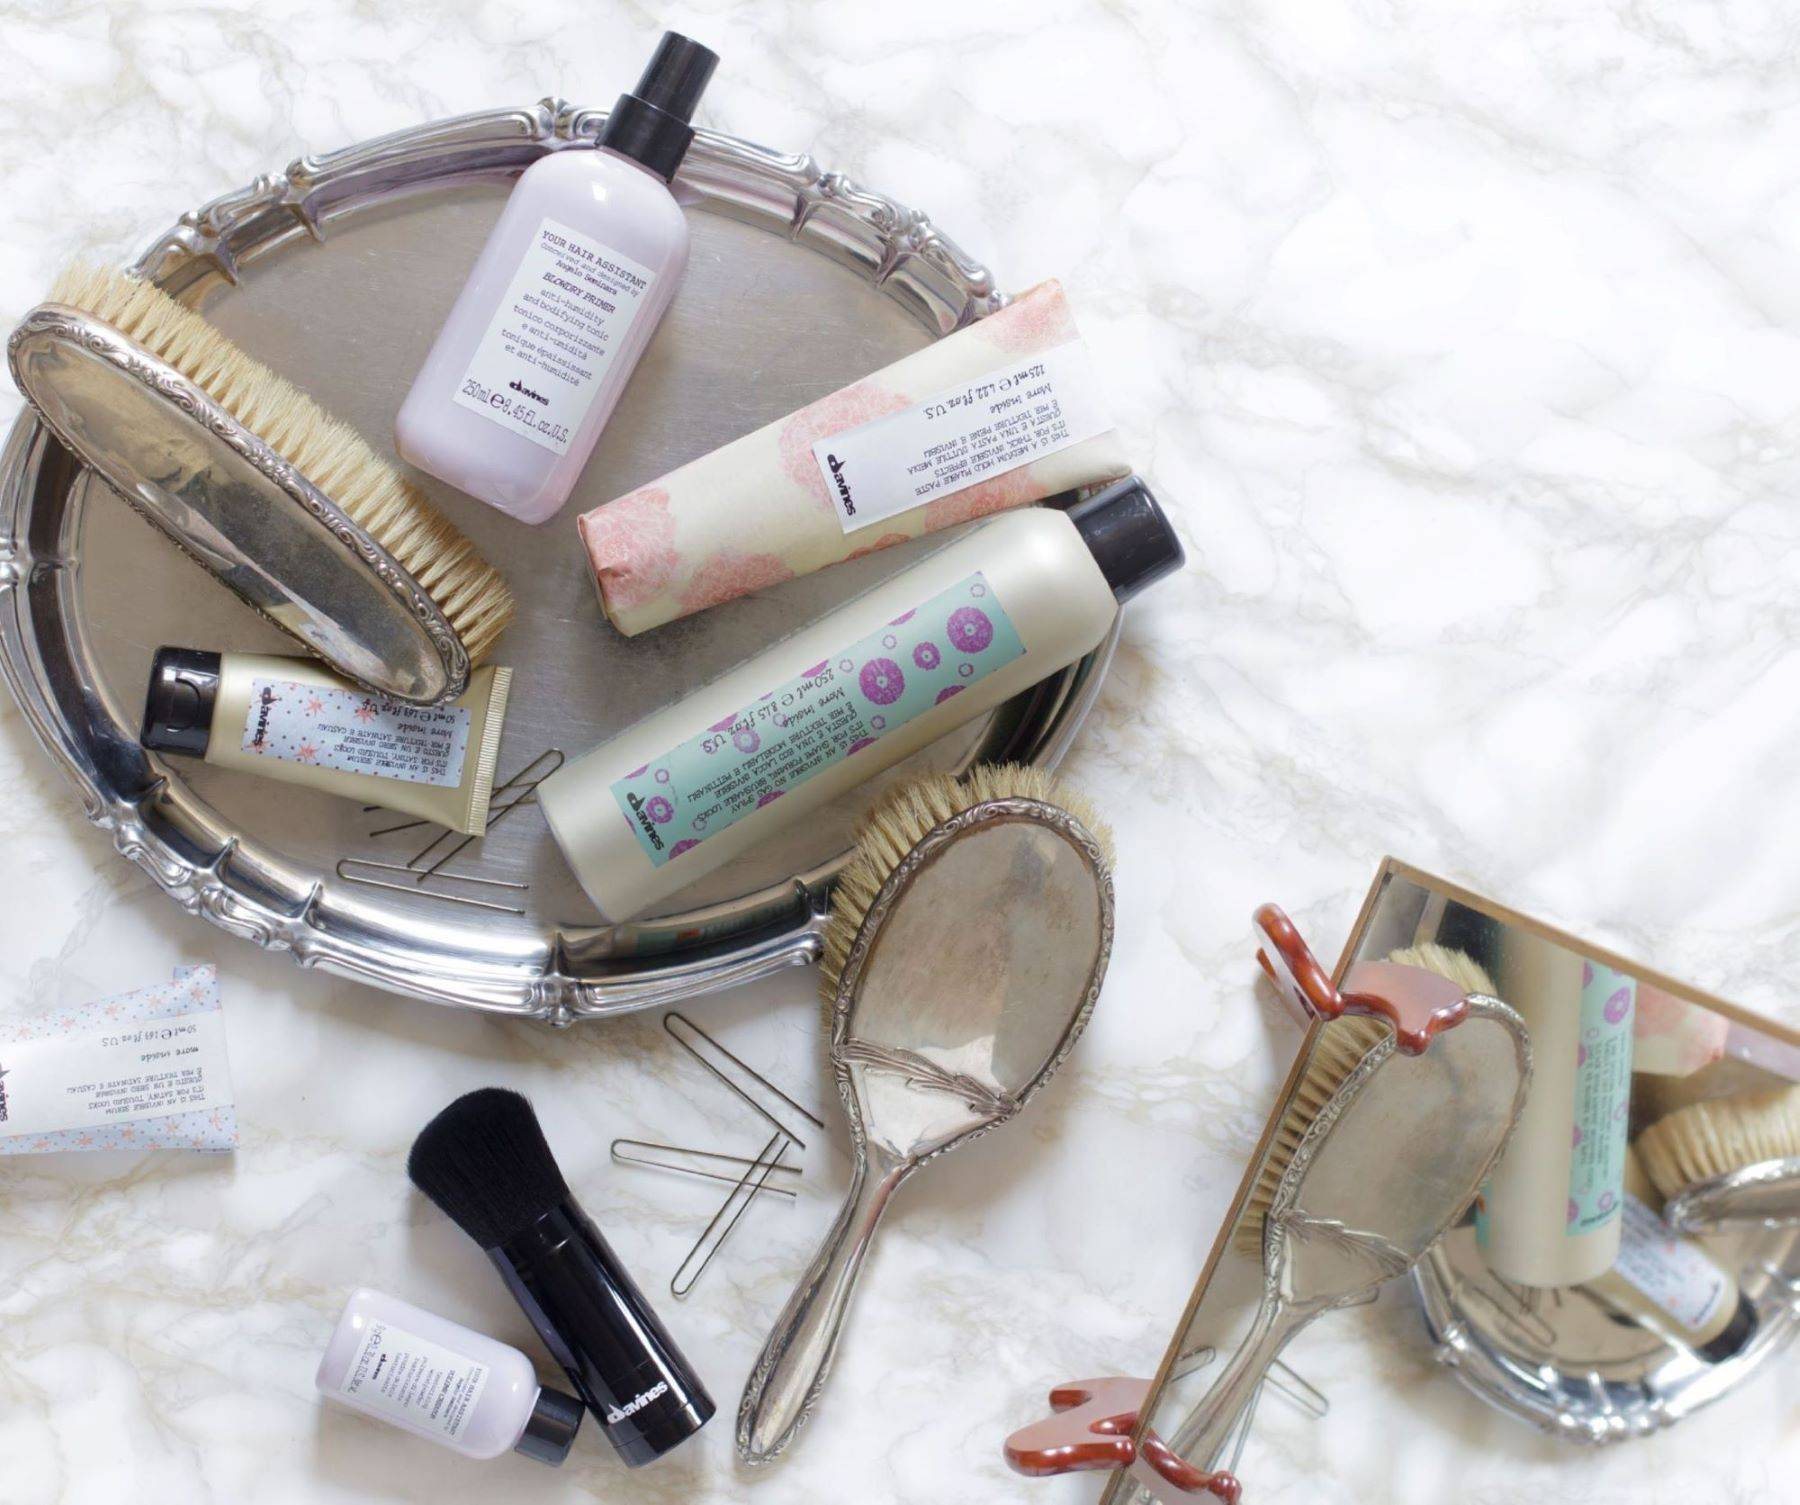 Davines products laying on a marble surface with a tray, hair brush, and styling tools